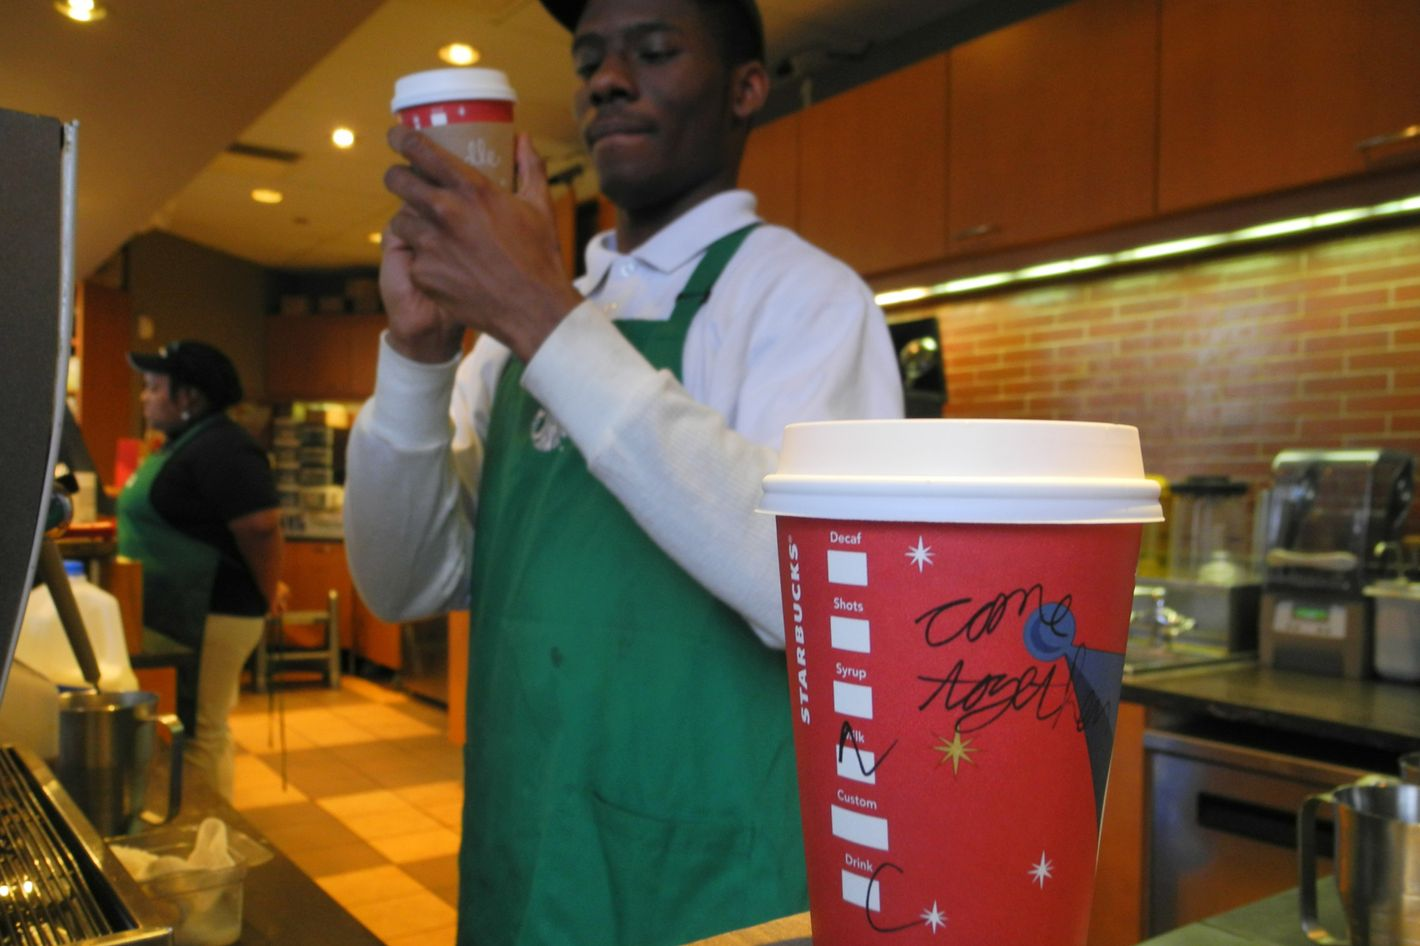 """A Starbucks employee writes a message on a cup of freshly brewed coffee at a local store in Washington, DC on December 26, 2012. Starbucks stirred the political pot Wednesday by urging its baristas to write """"come together"""" on its cups as a way to pressure US lawmakers to compromise on a deal to avert a year-end fiscal crisis. Starbucks chief executive Howard Schultz said the American coffee giant was recommending its first-ever message on the side of tall, grande and venti (small, medium and large) drinks sold at its Washington stores as a way to help break the capital's gridlock on the so-called """"fiscal cliff.""""  Lawmakers and the White House have less than a week to work out a deal aimed at preventing tax hikes from hitting all Americans and a series of deep, mandated spending cuts from kicking in beginning January 1."""